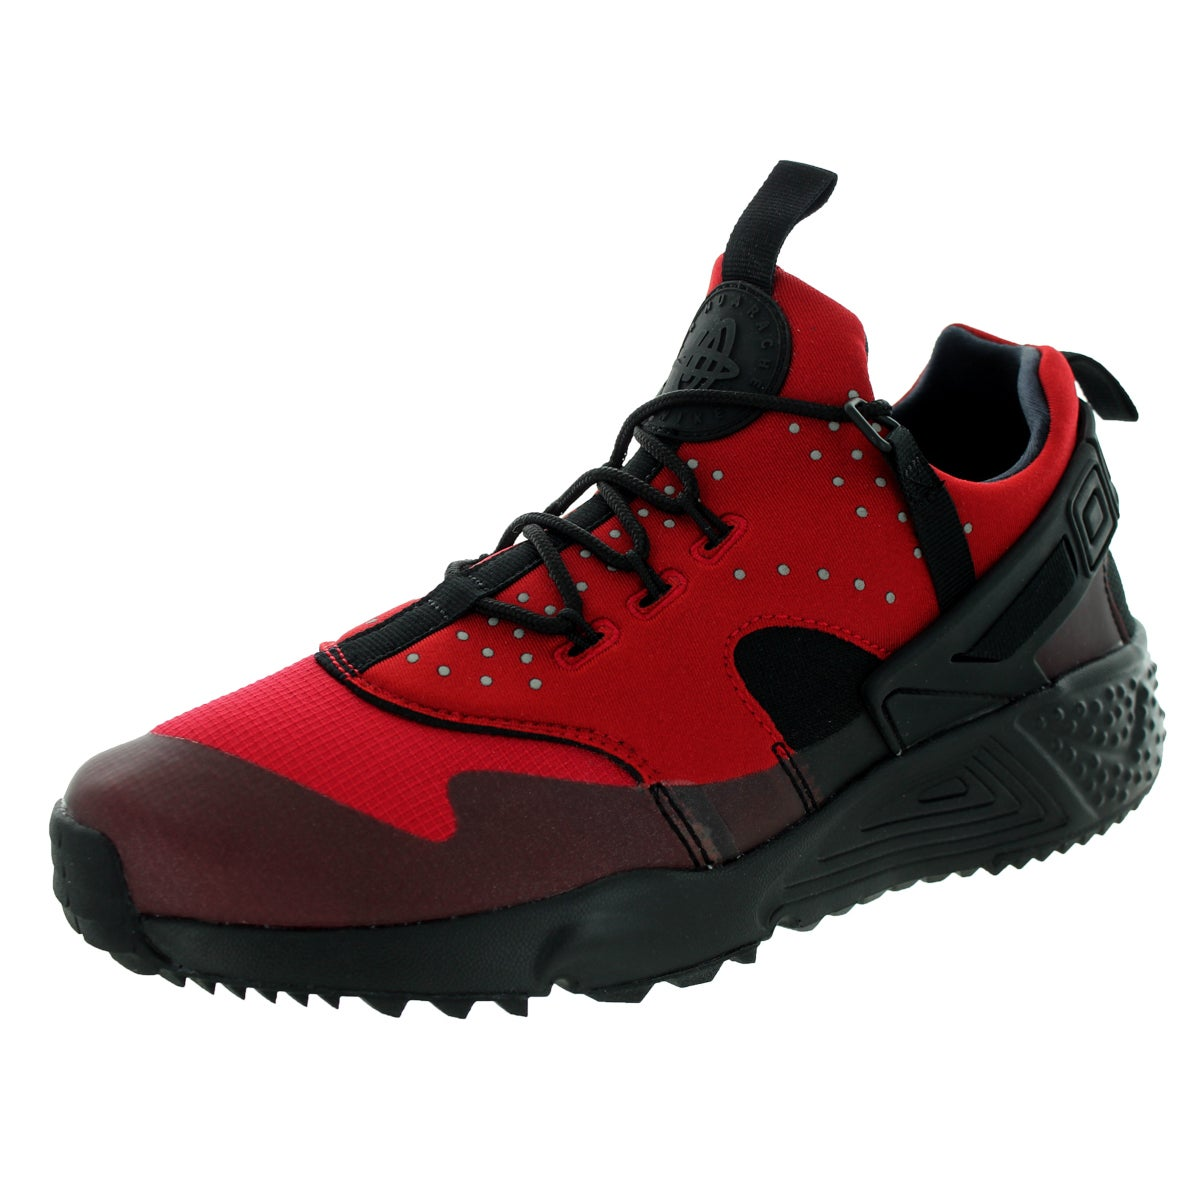 3f243f73b47d Shop Nike Men s Air Huarache Utility Gym Red and Black Running Shoes - Free  Shipping Today - Overstock - 12115997